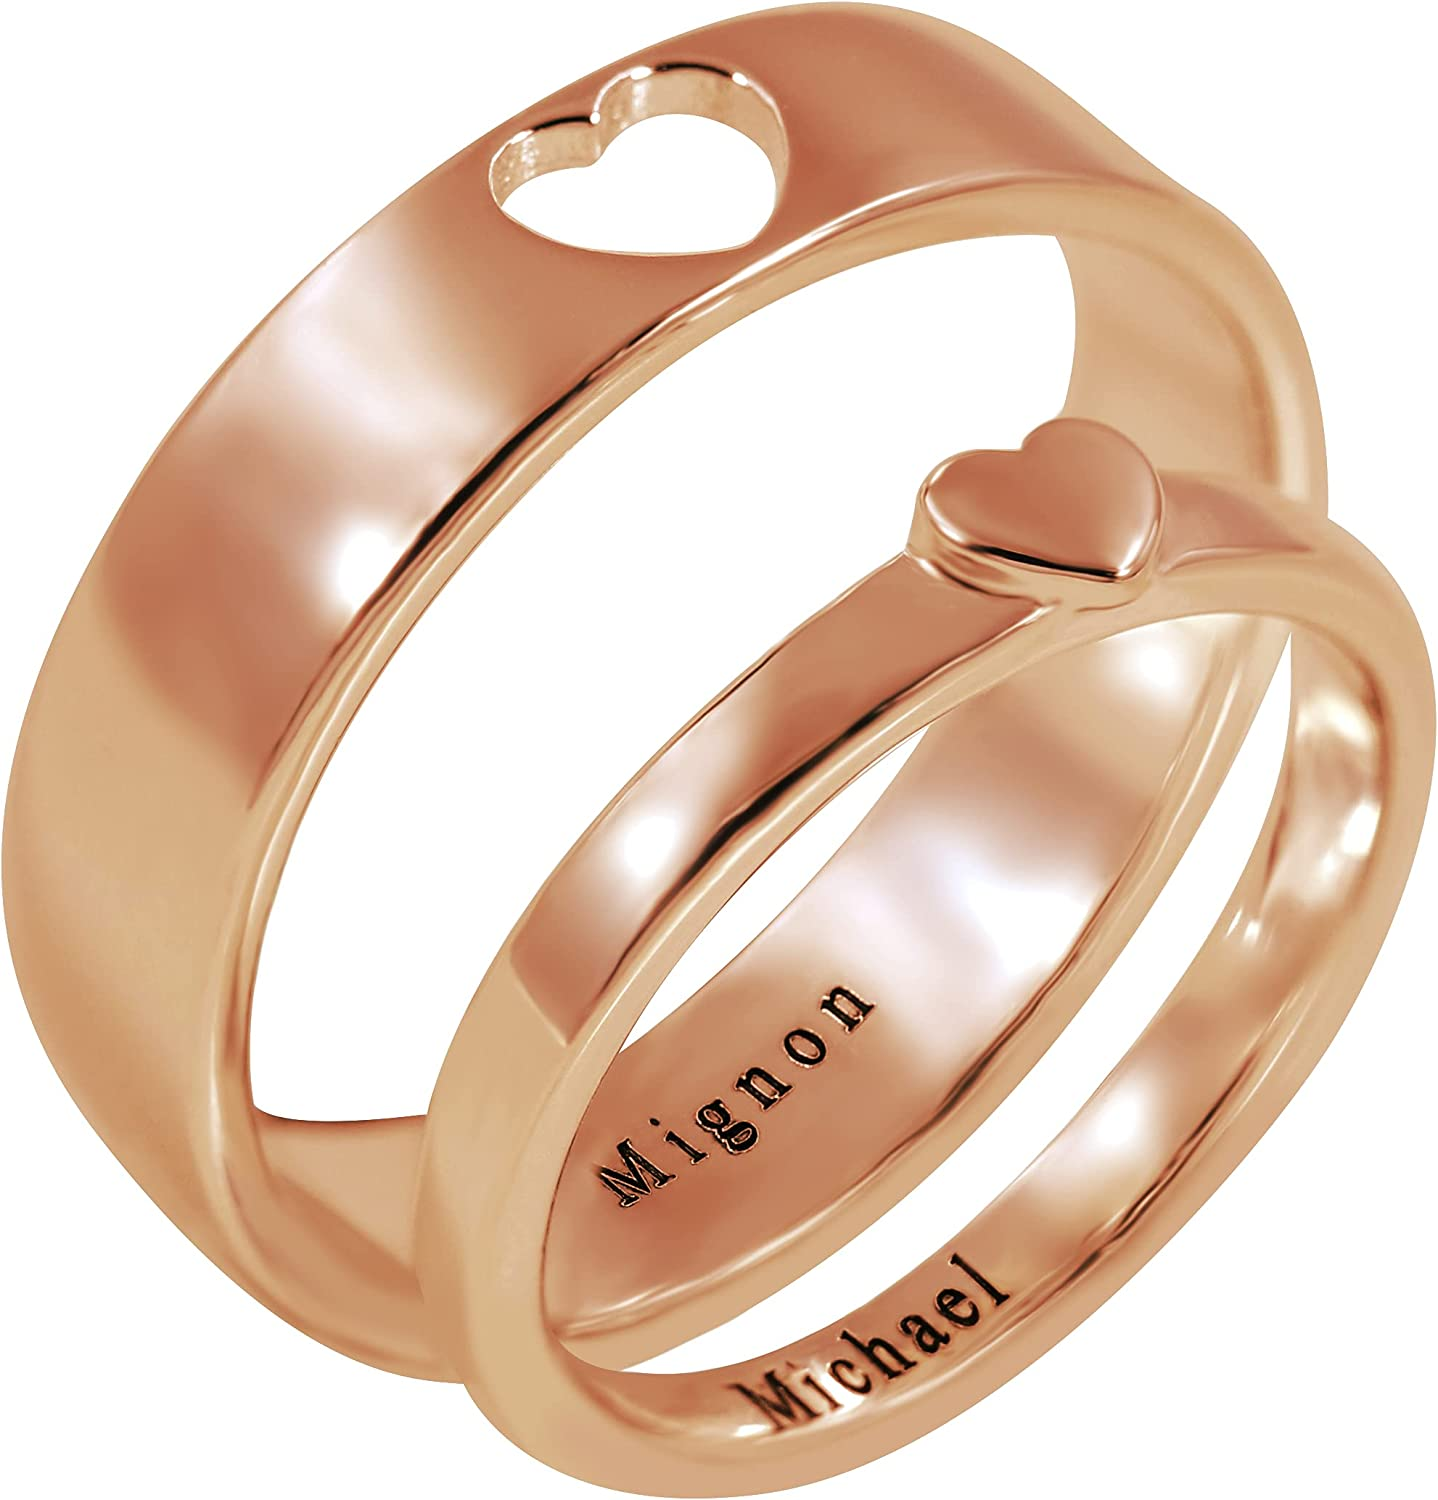 Gerryed Custom Matching Rings for Couples,Heart Promise Ring,Personalized Engagement Rings,Couple Rings,Mother Day Ring,Wedding Band Sets Anniversary Rings for Women/Men/Her/Him